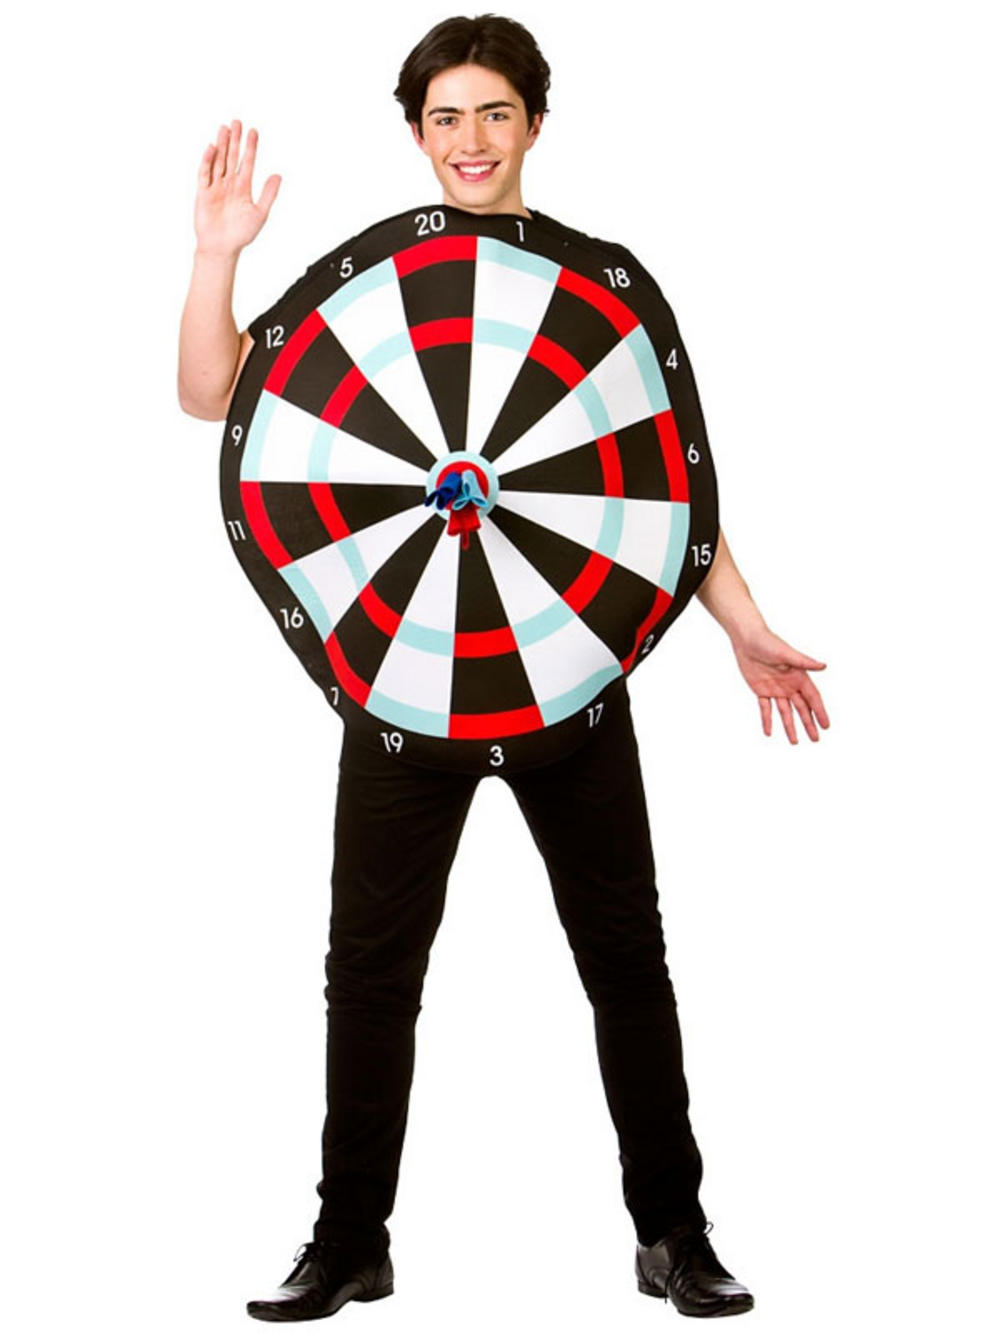 Adult Dart Board Game Costume u0026 Novelty Darts New Fancy Dress Stag Party Outfit Buy Online